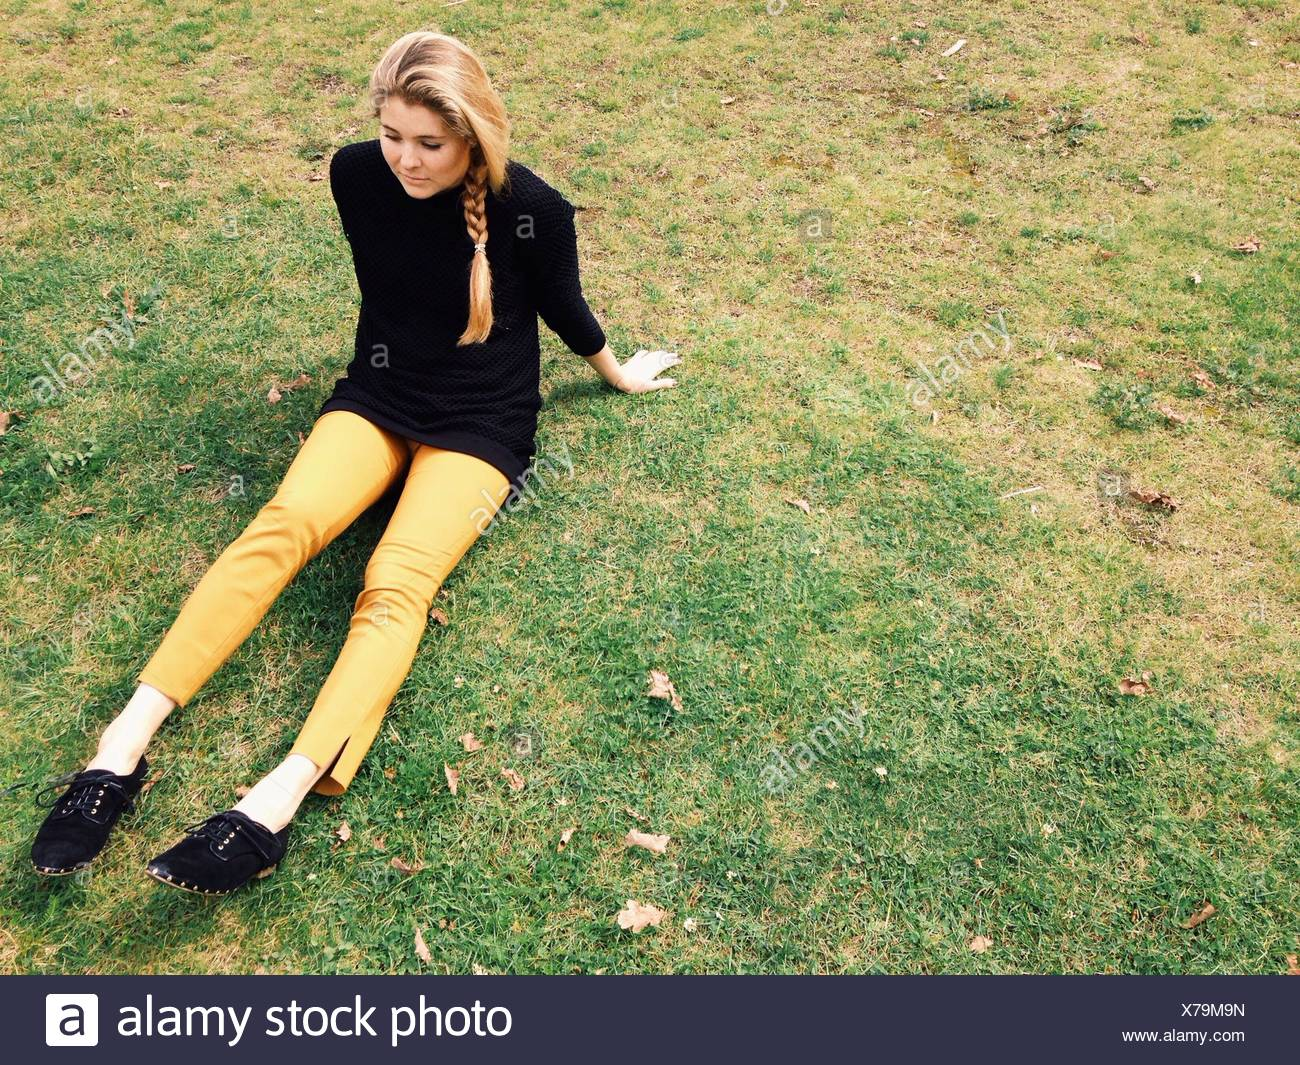 High Angle View Of Woman Relaxing In Park - Stock Image